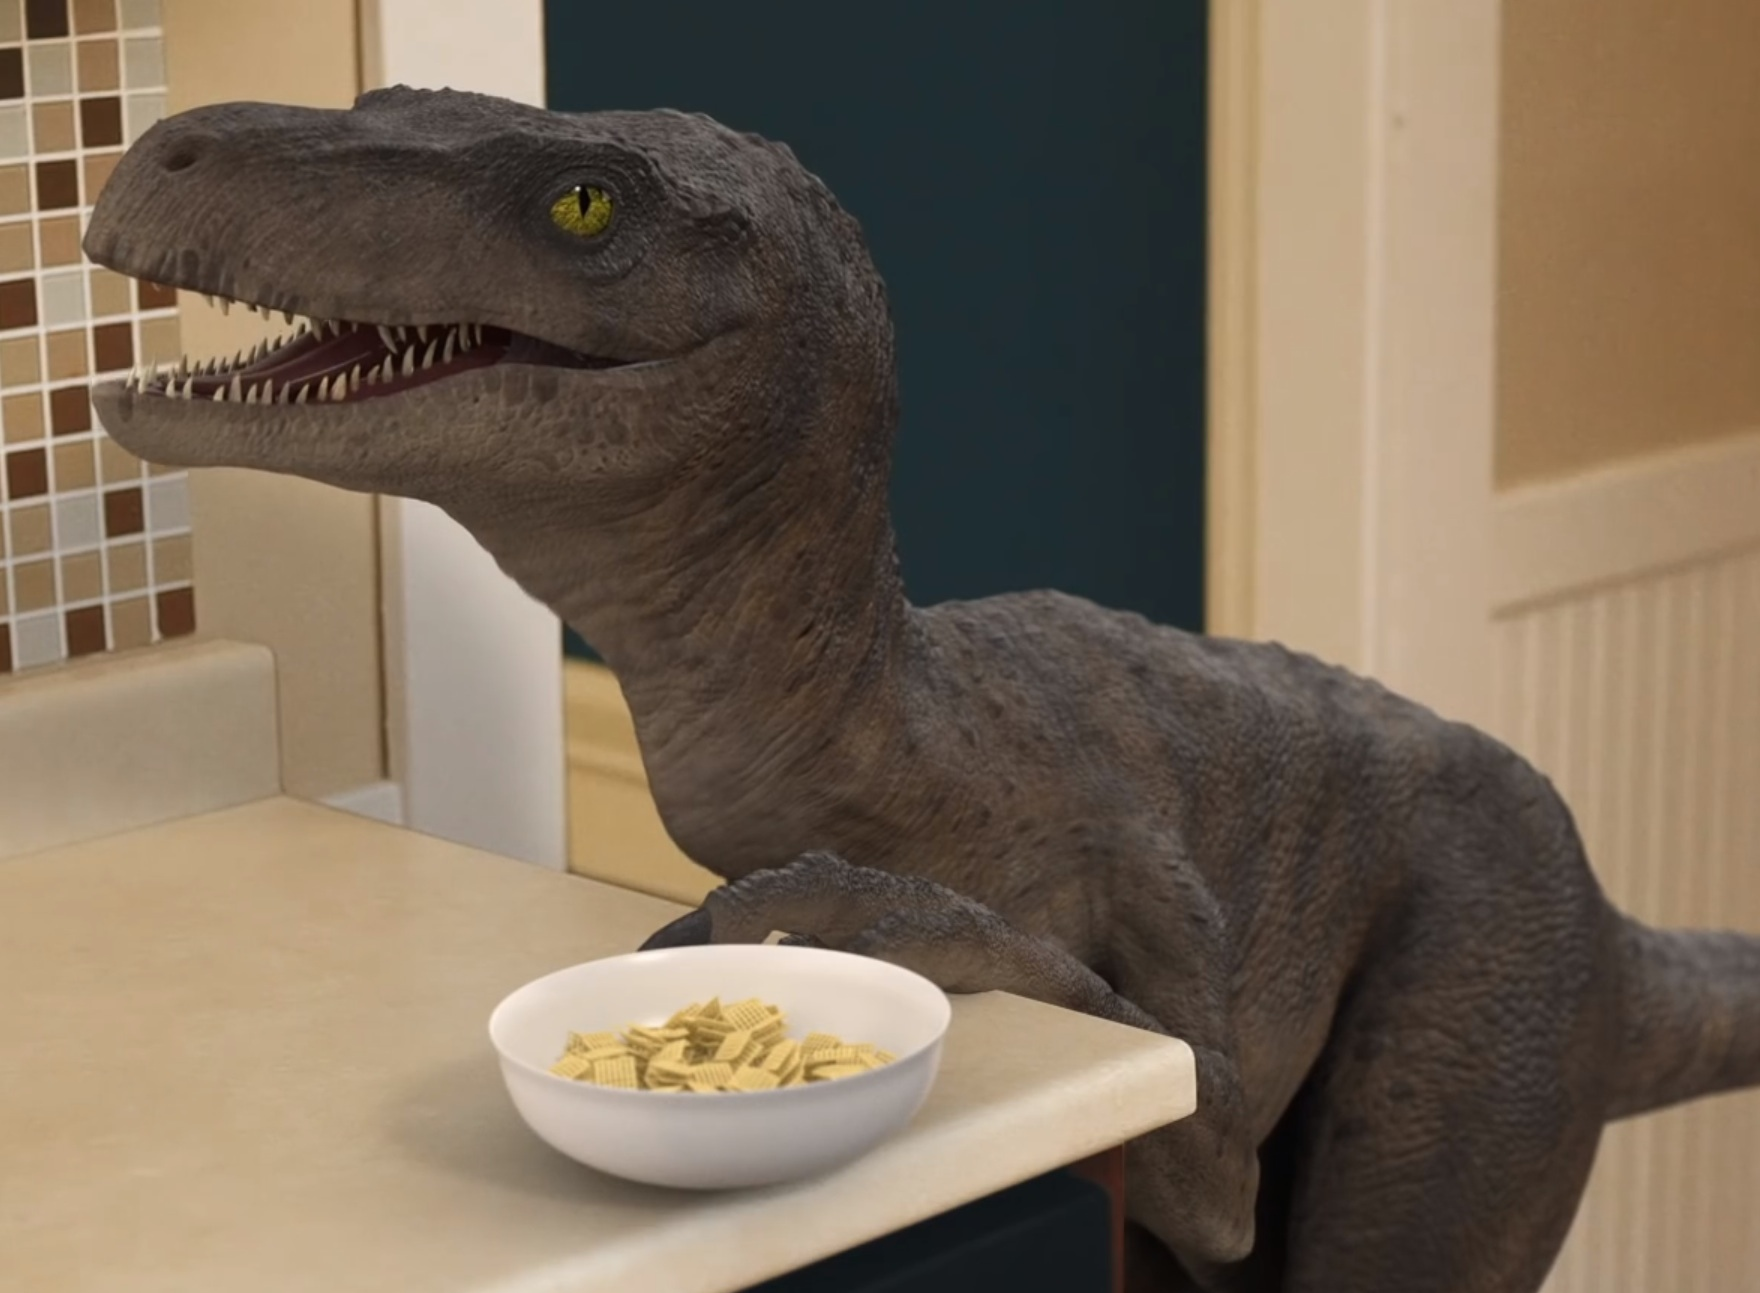 Proof that if dinosaurs were house pets, they'd be a lot like cats